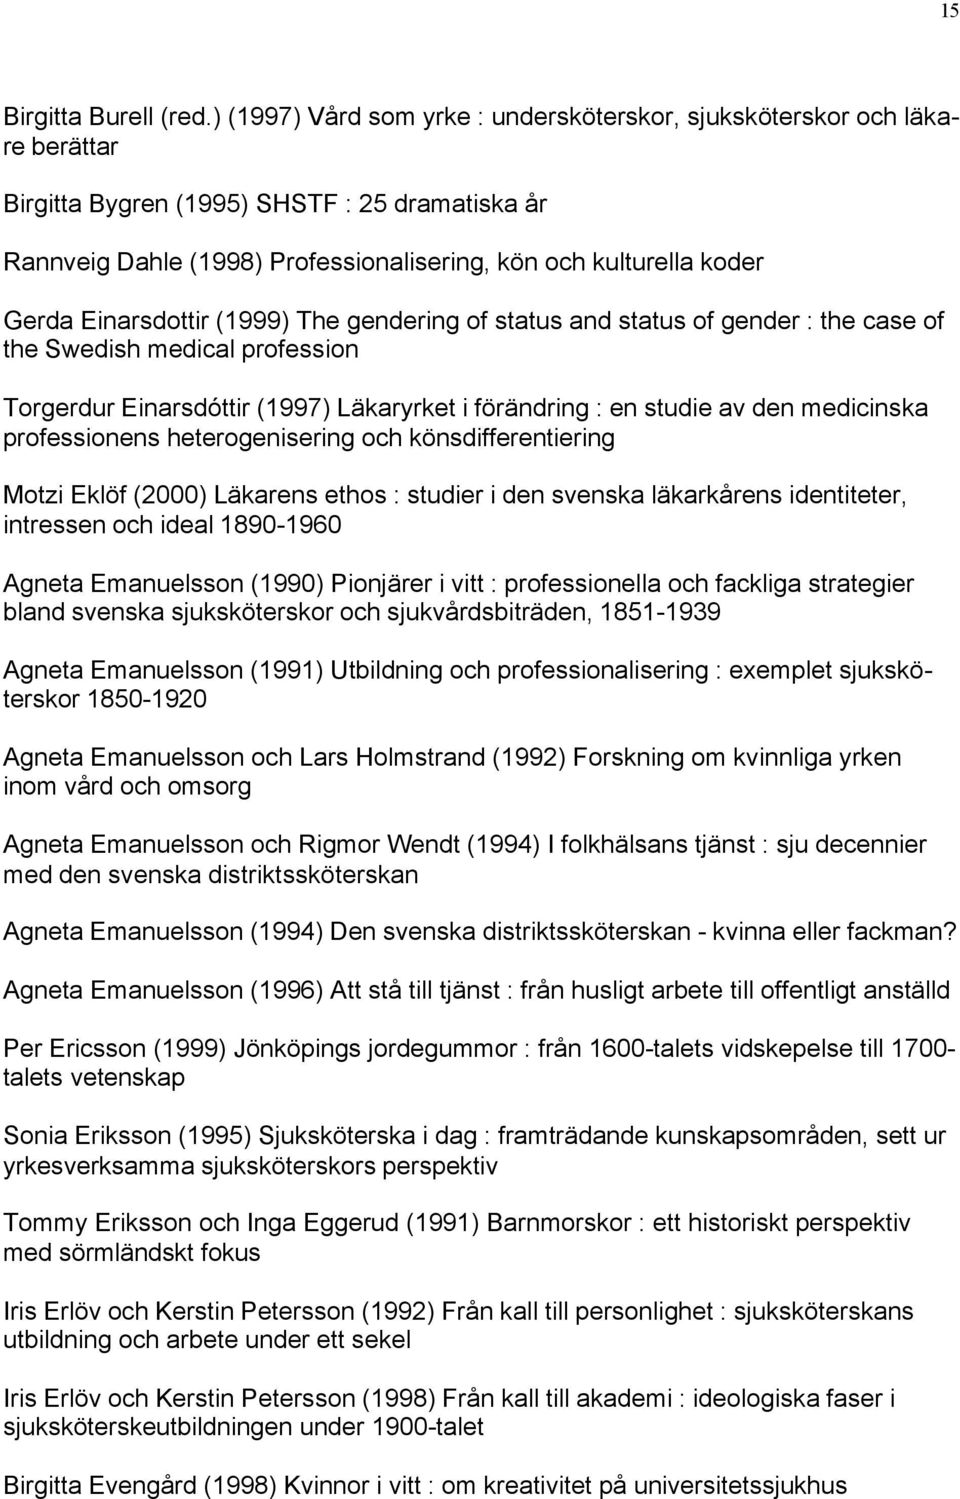 Einarsdottir (1999) The gendering of status and status of gender : the case of the Swedish medical profession Torgerdur Einarsdóttir (1997) Läkaryrket i förändring : en studie av den medicinska